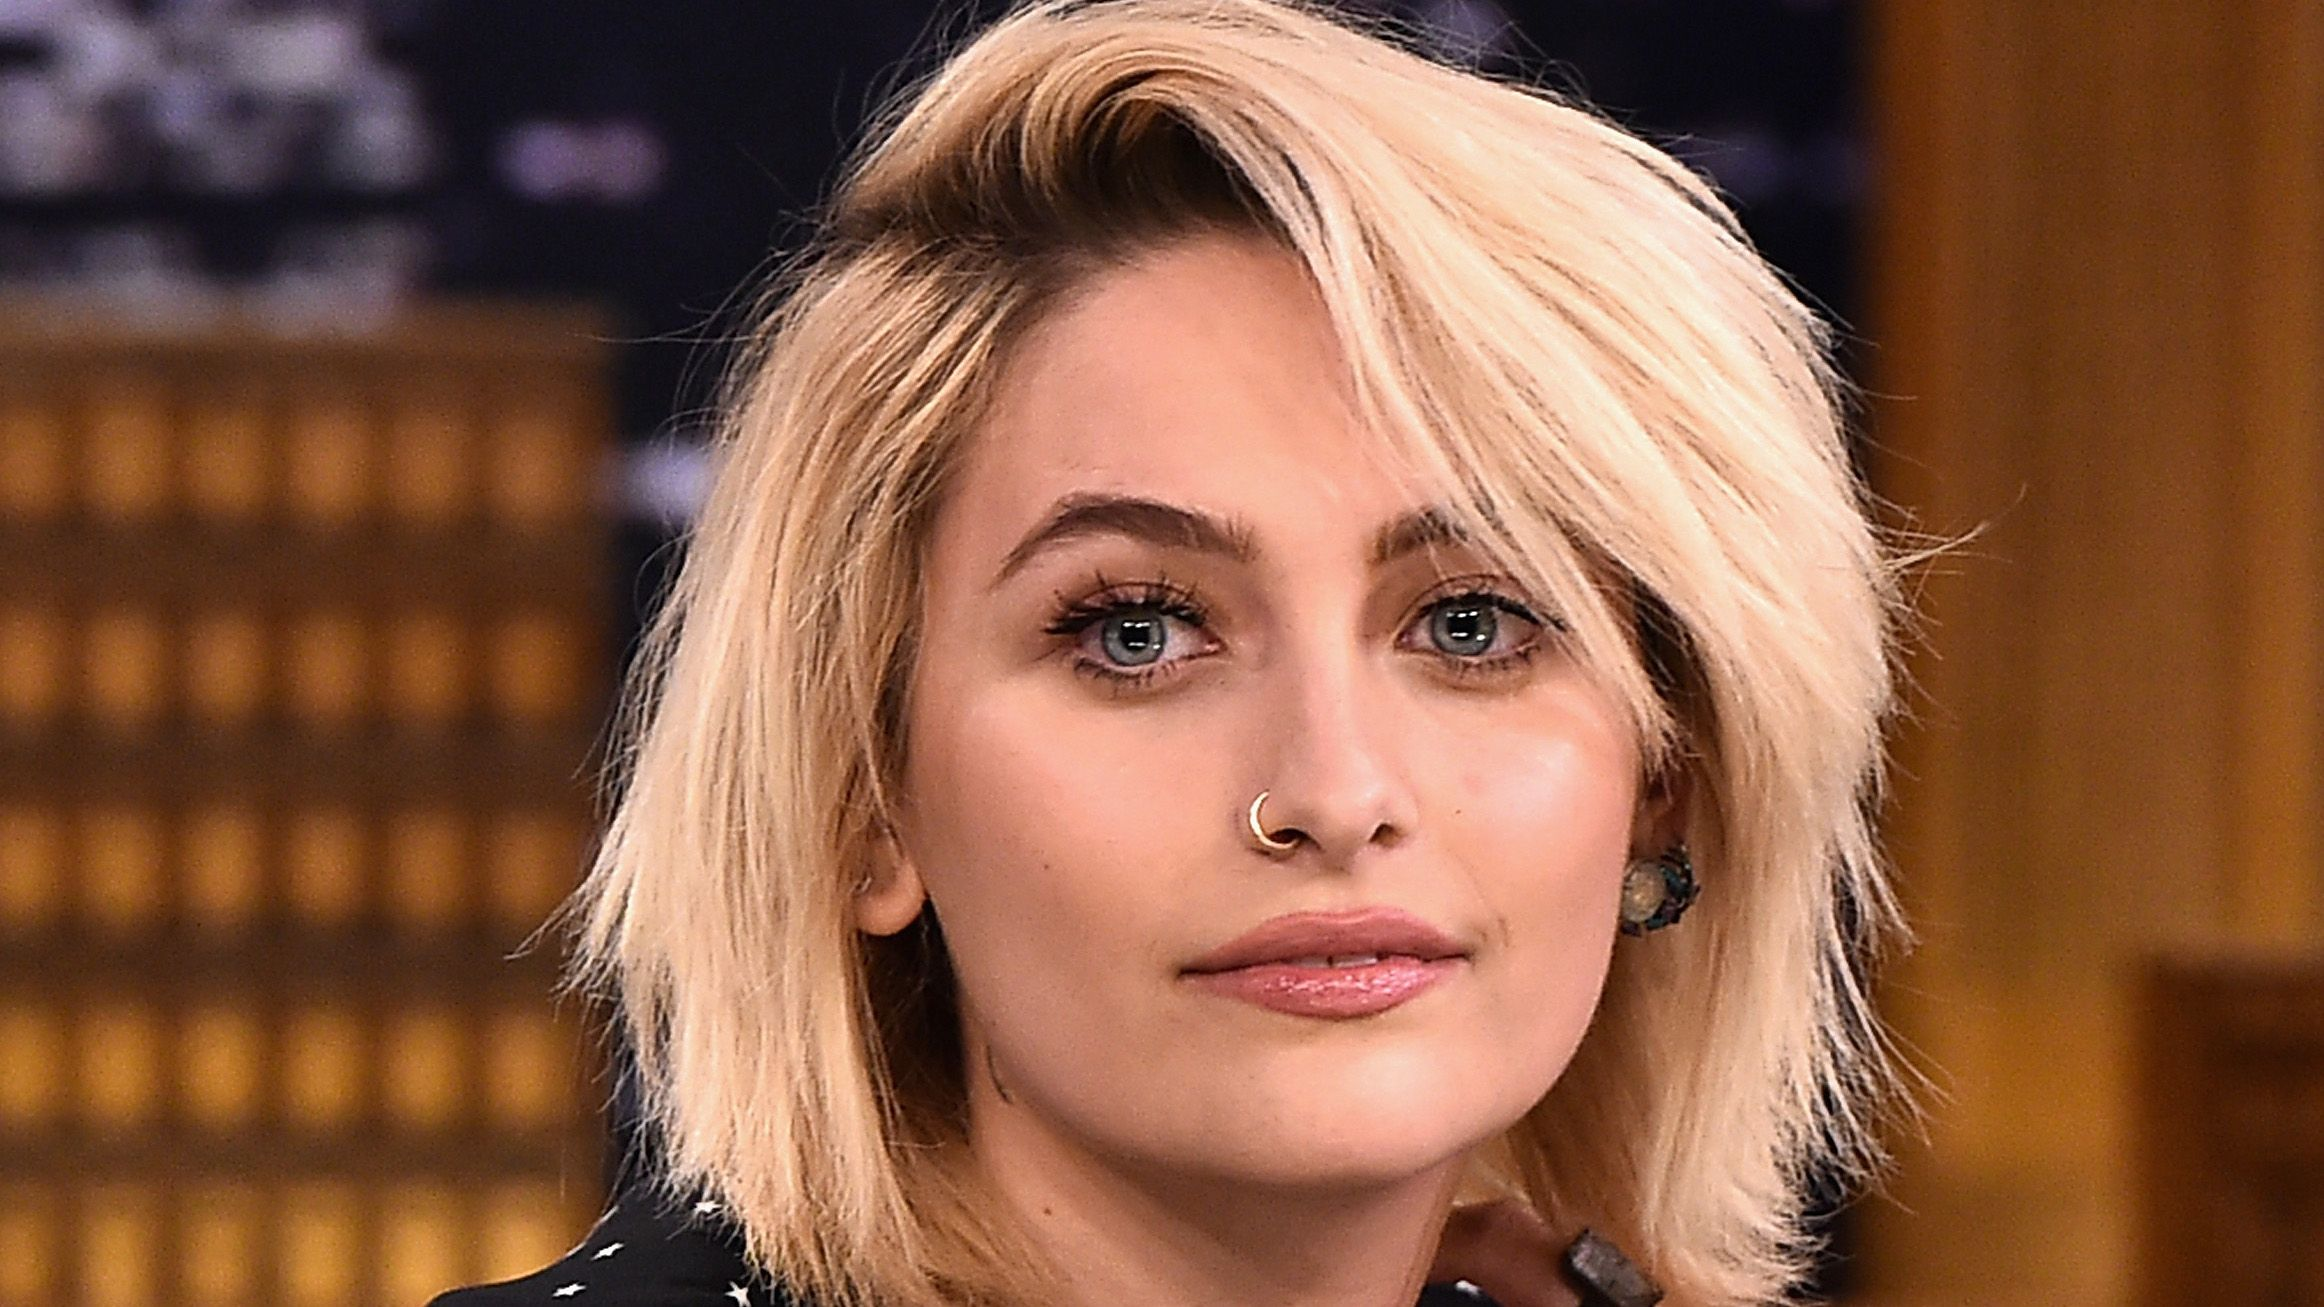 Your Week Won't Be Complete Without a Closer Look at Paris Jackson's Lashes